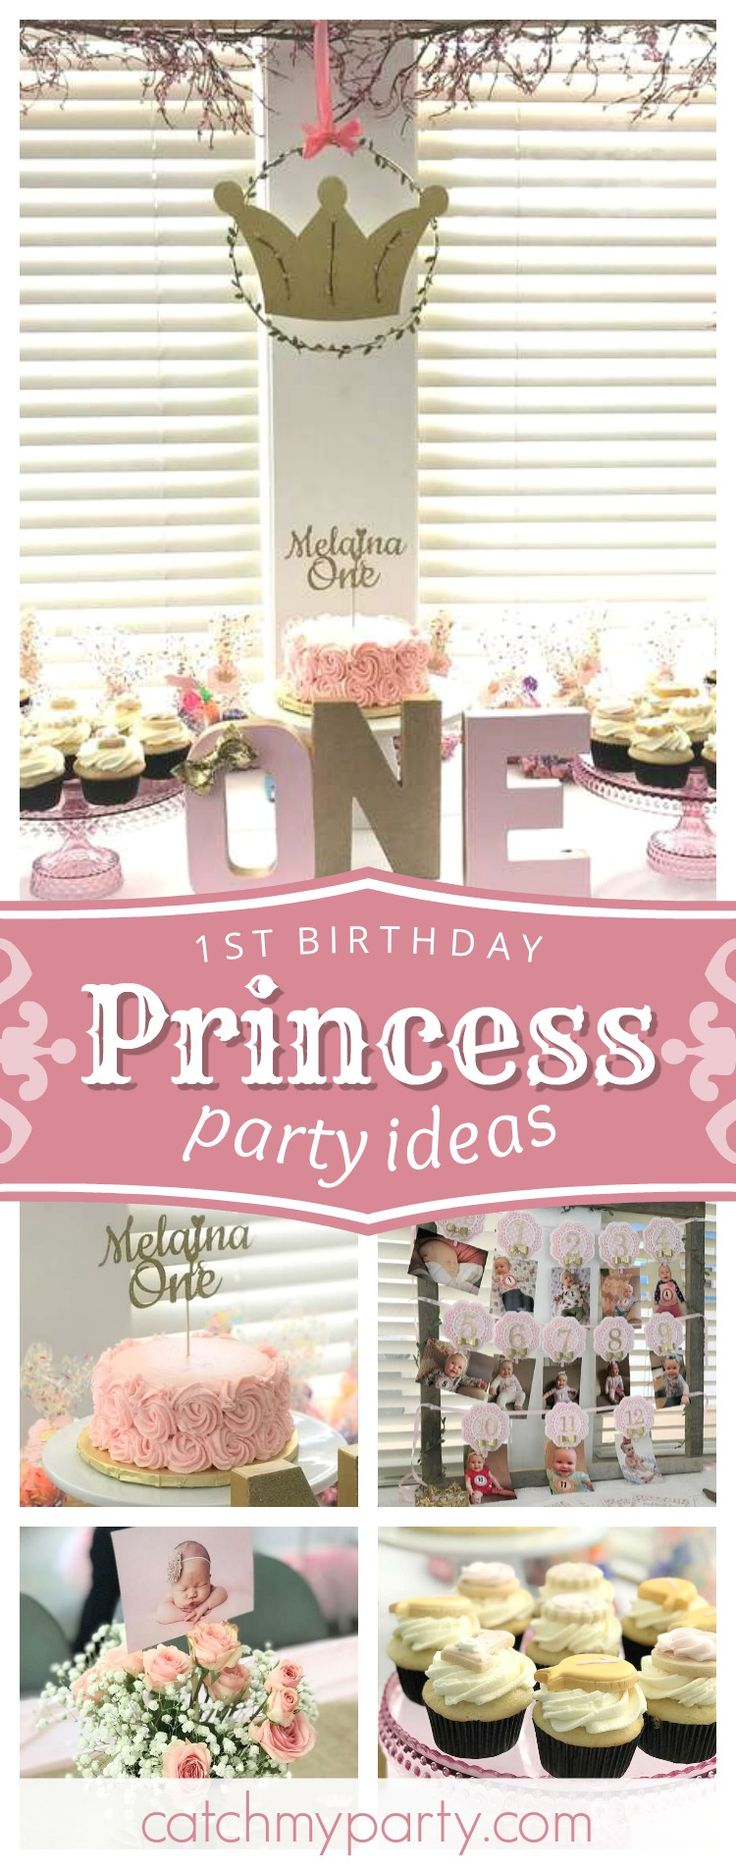 Check out this cute Princess Baby's 1st Birthday! The tutus decorating the chairs are so cute!! See more party ideas and share yours at CatchMYParty.com #princess #1stbirthday #girlbirthday